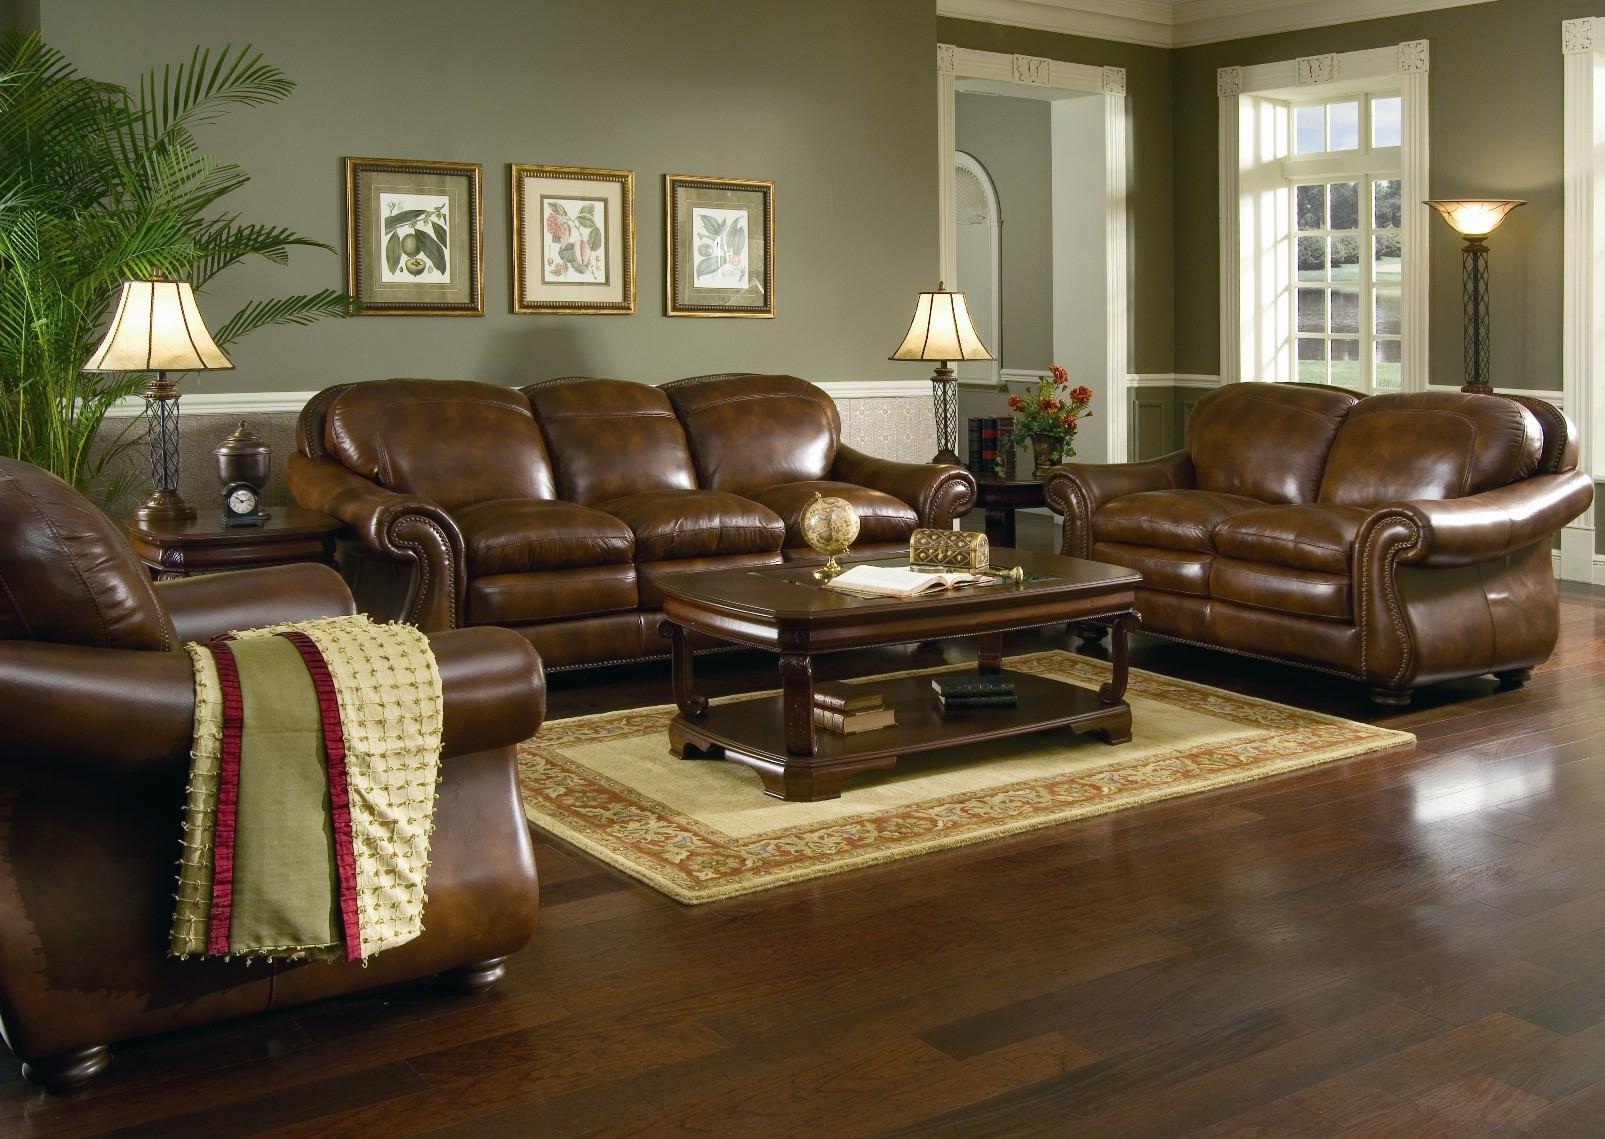 Image of: Living Room With Brown Sofa